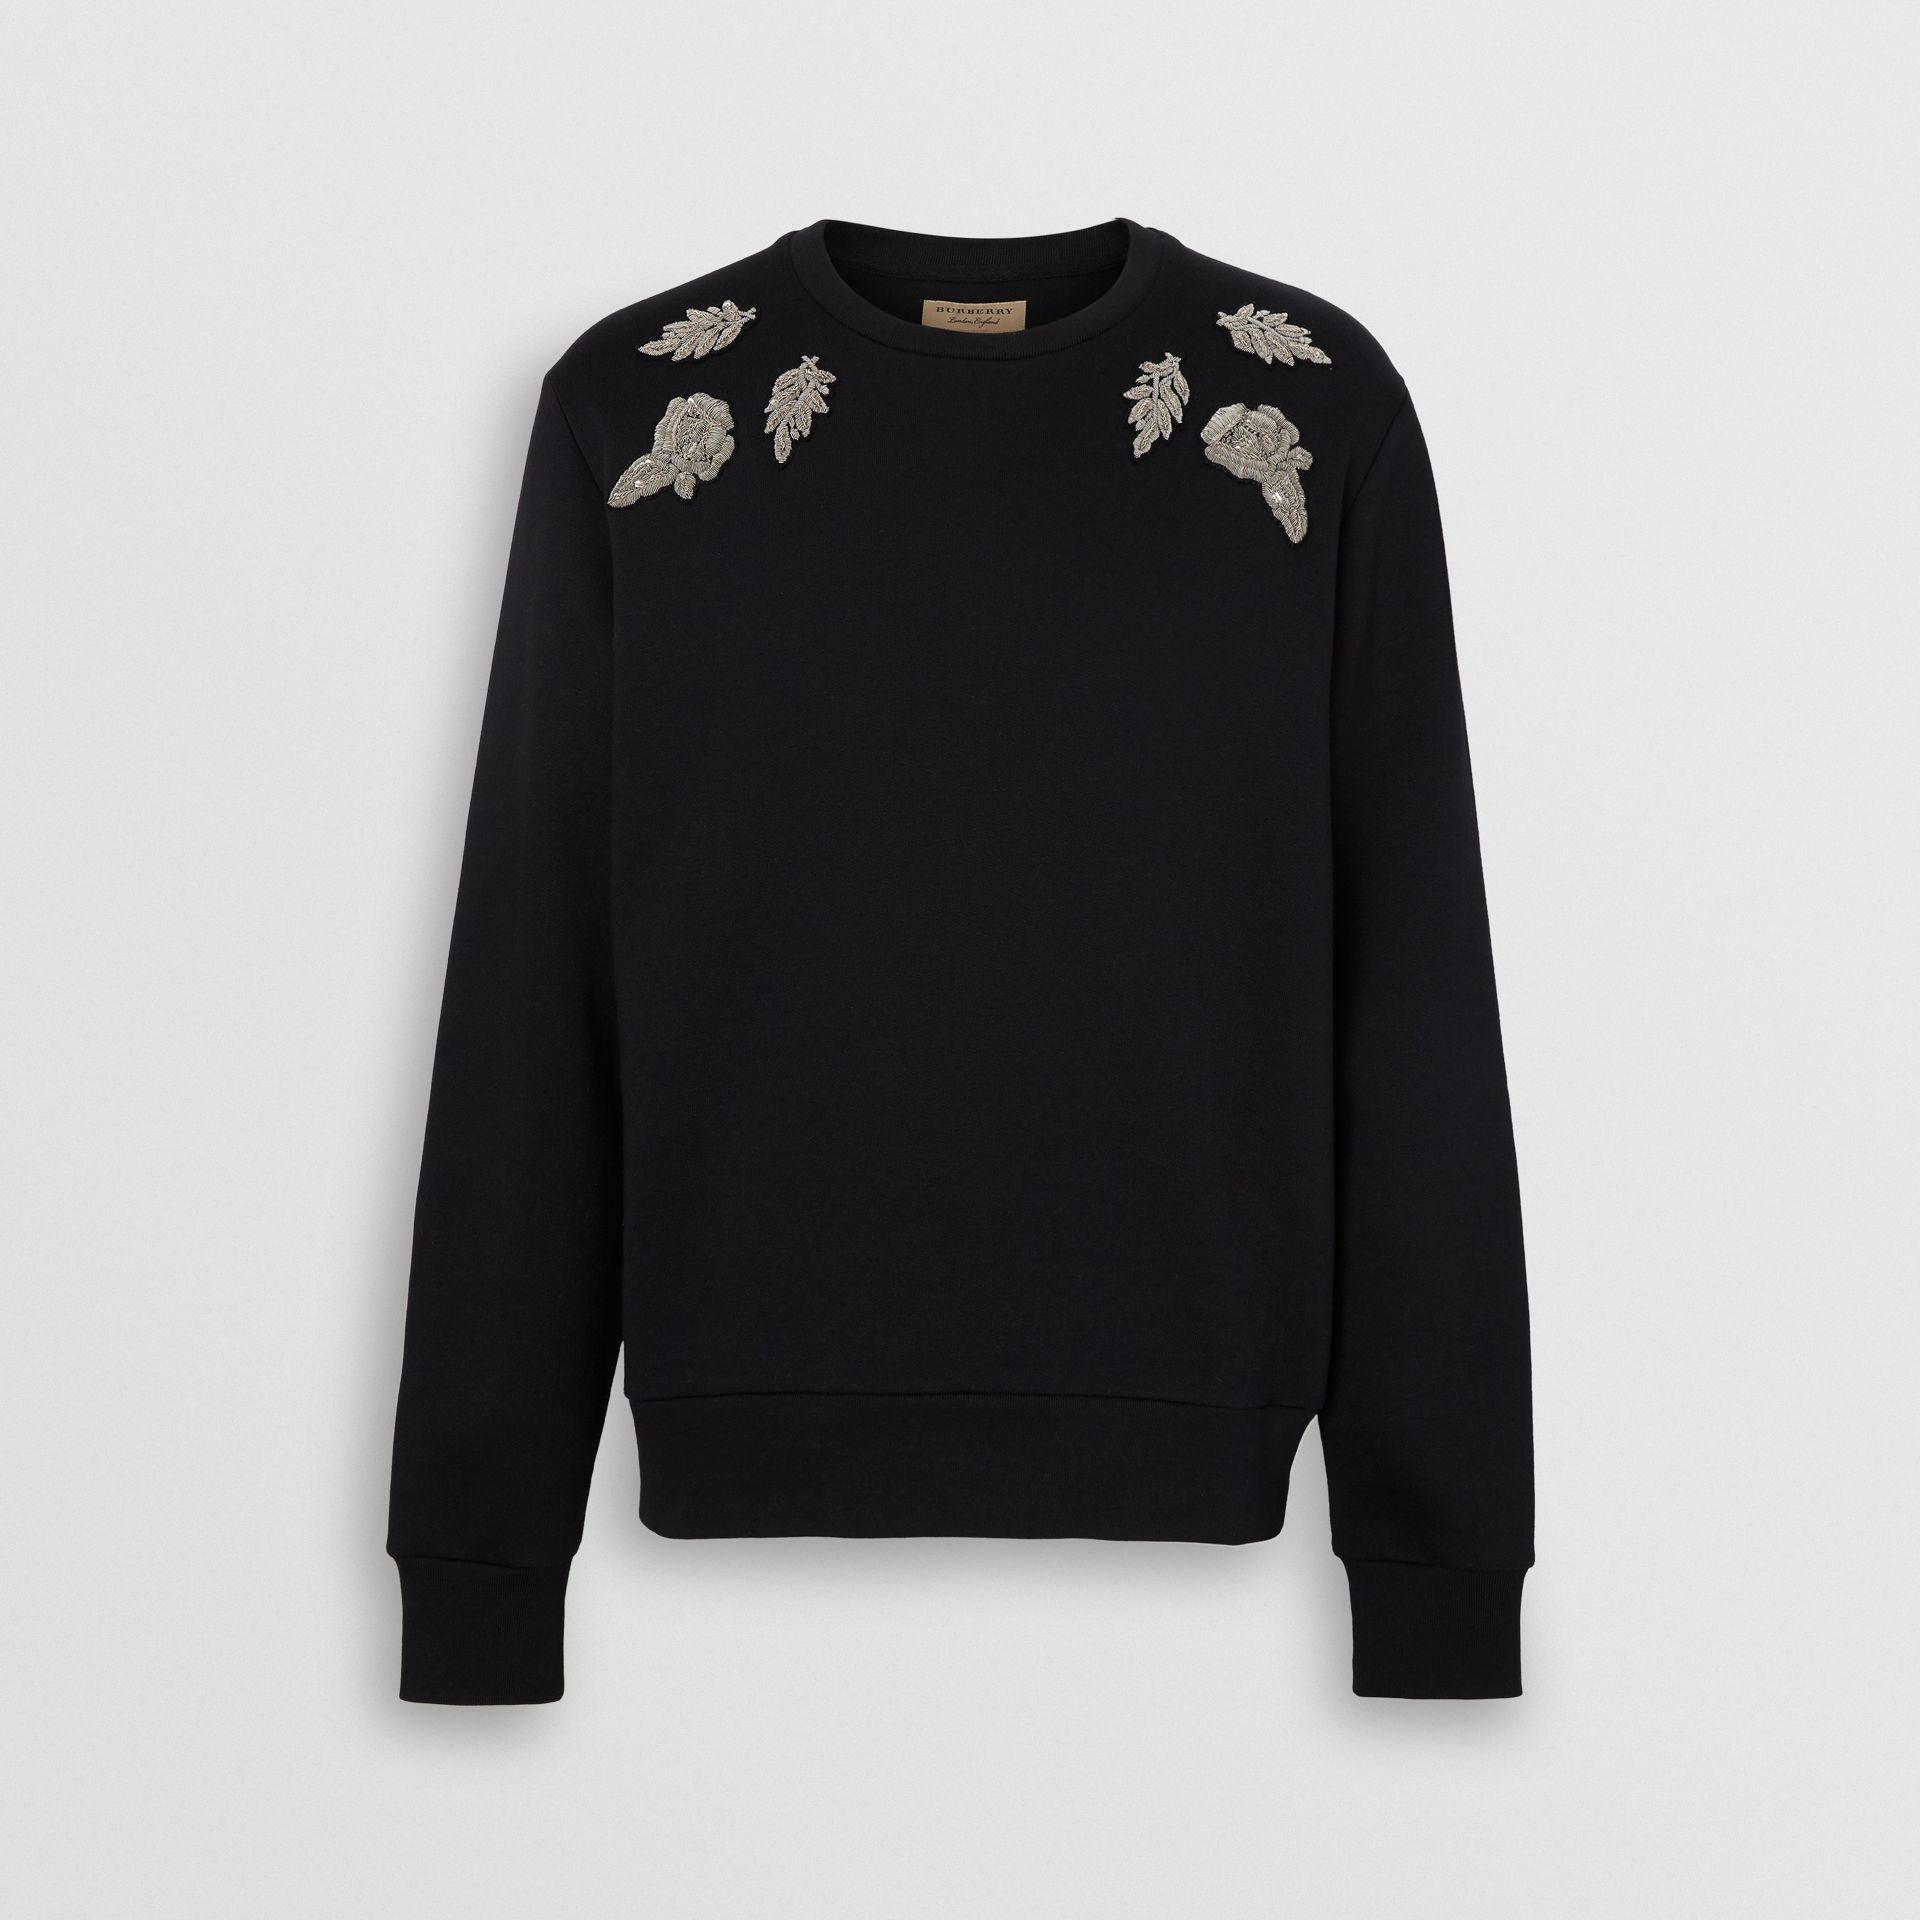 Bullion Floral Cotton Blend Sweatshirt in Black - Men | Burberry - gallery image 3